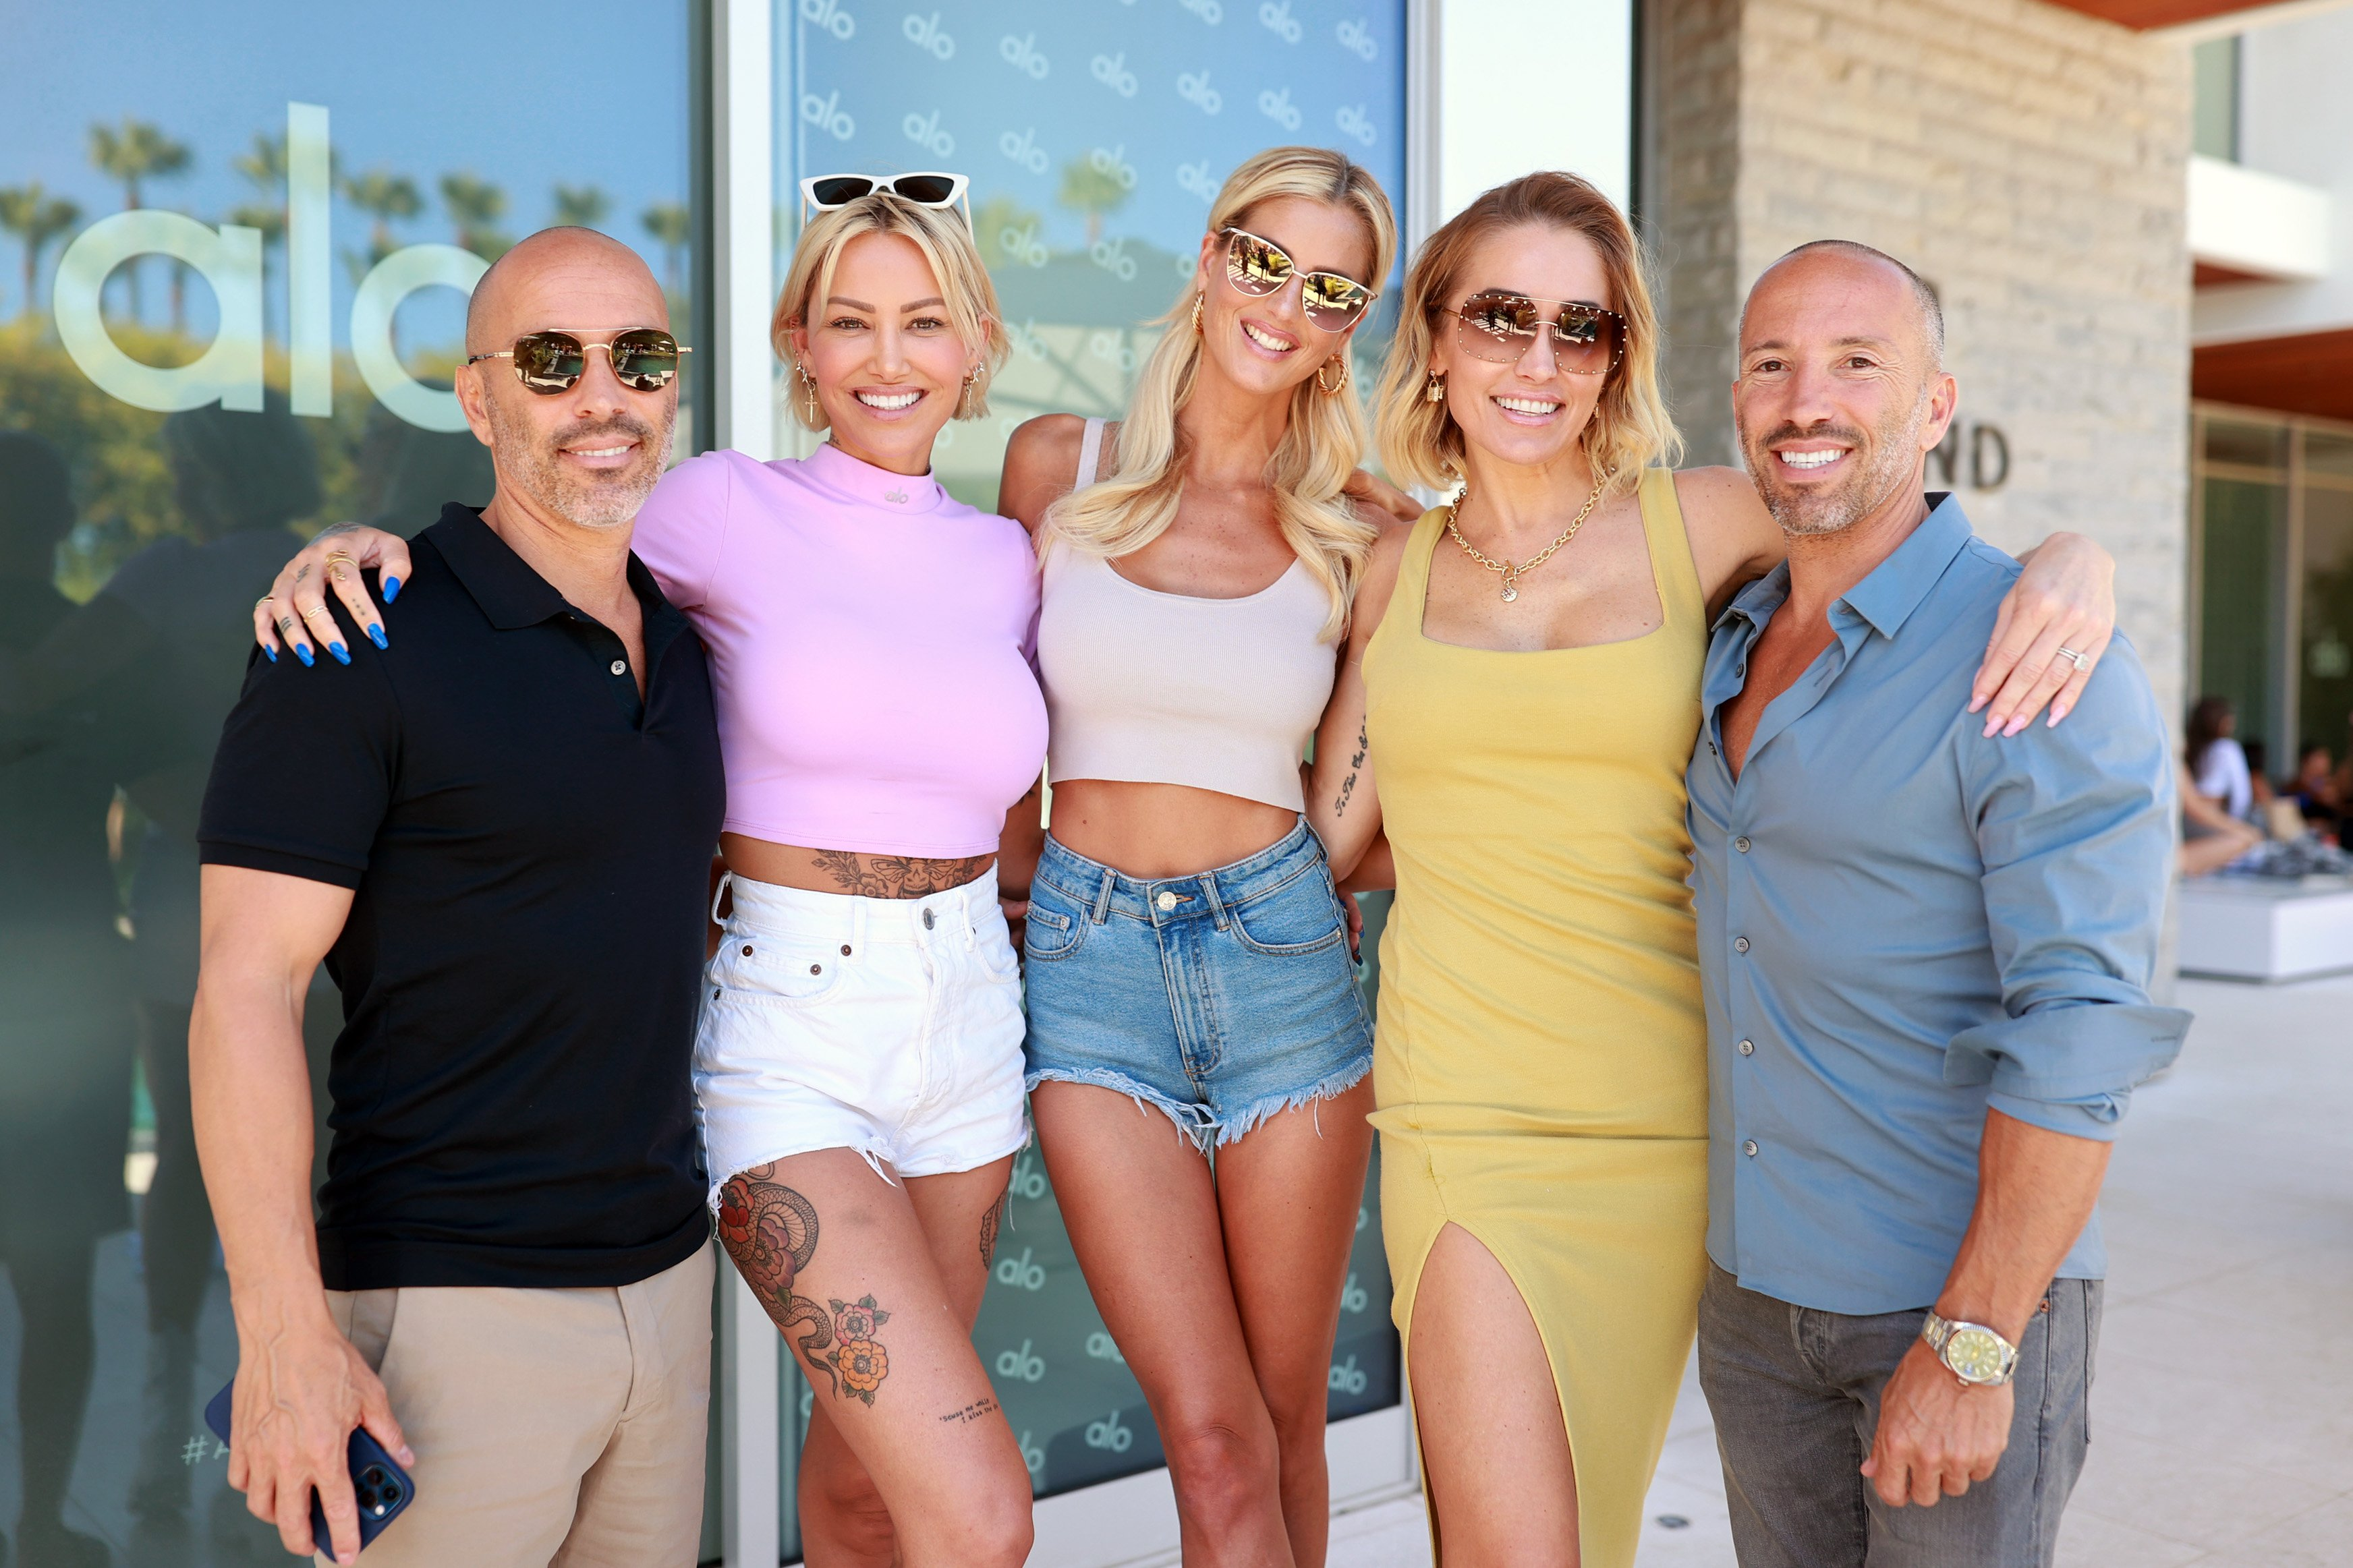 Jason Oppenheim, Tina Louise, Emma Hernan, Mary Fitzgerald, and Brett Oppenheim at Day 3 at Alo House, LA, 2021   Photo: Getty Images